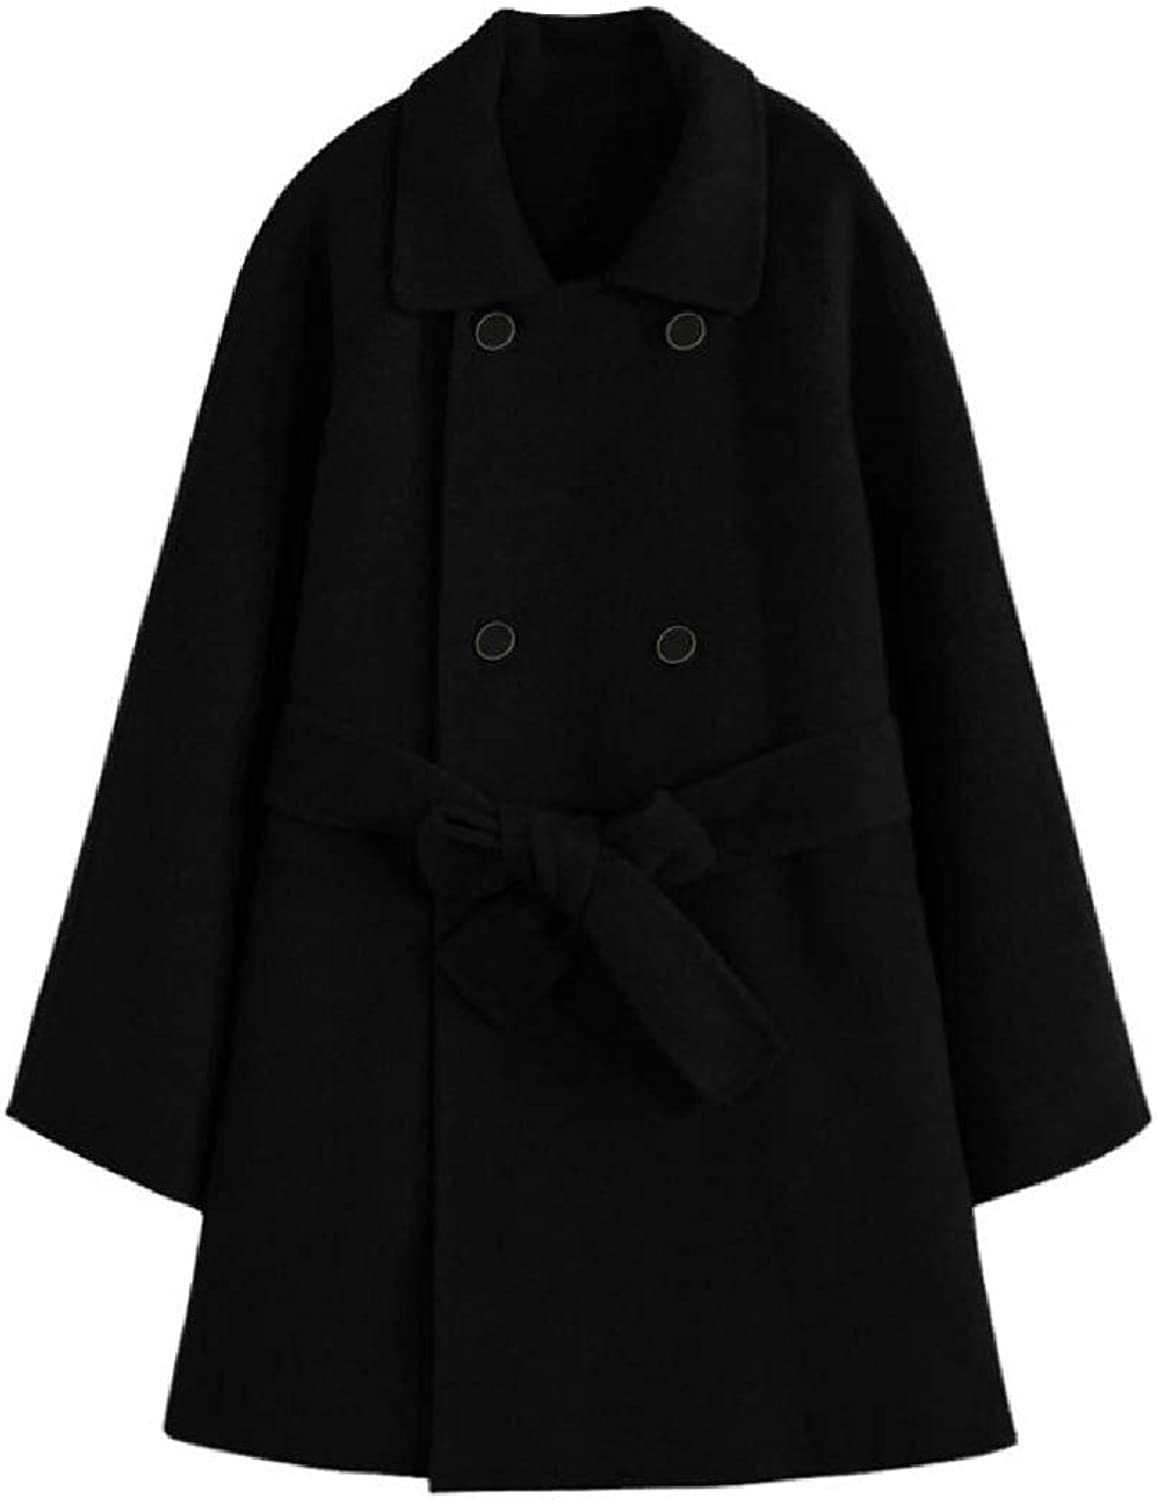 Buildhigh Womens Poncho Topcoat DoubleBreasted Outwear Solid Woolen Jacket